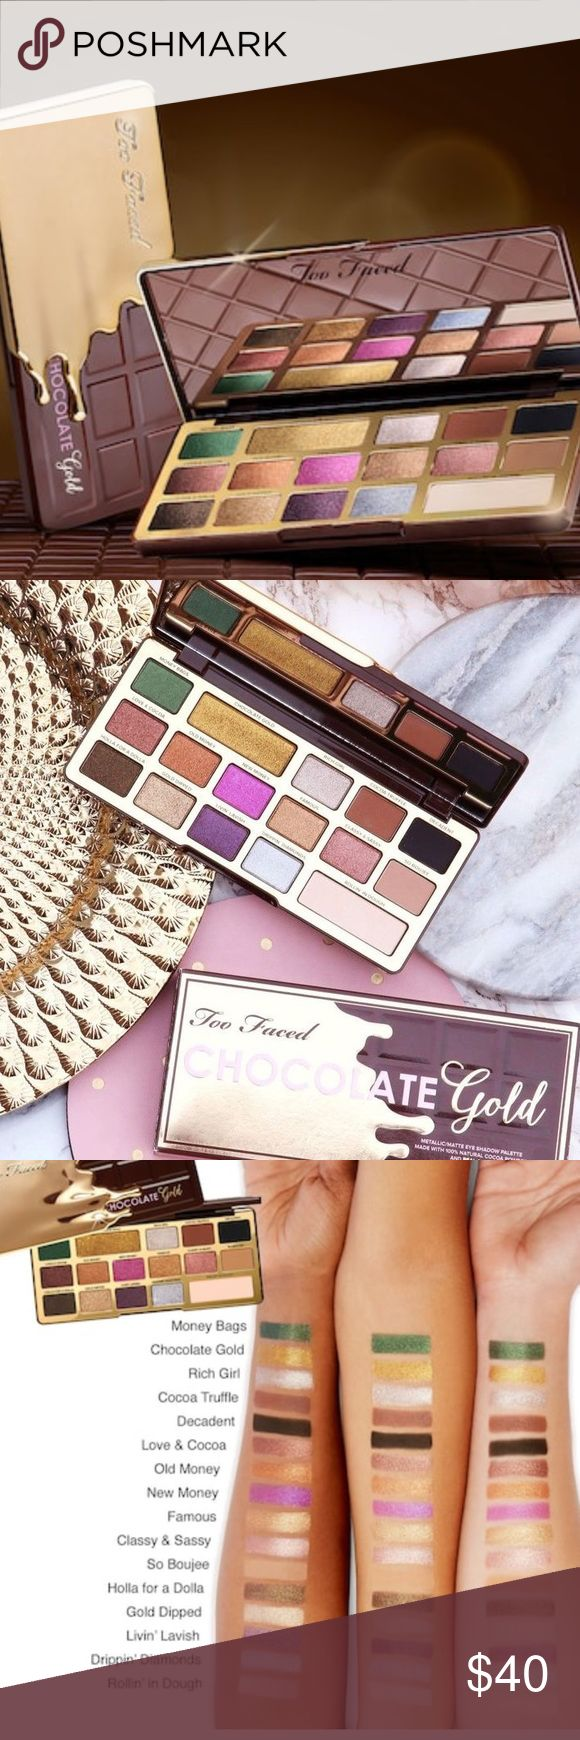 NWT Too Faced Chocolate Gold Eyeshadow palette 💯 authentic NWT TOO FACED Chocolate Gold Eyeshadow Palette A duochromatic matte and metallic eyeshadow palette that's infused with real gold and cocoa powder.  All 3 CG are brand new and in perfect condition! Too Faced Makeup Eyeshadow